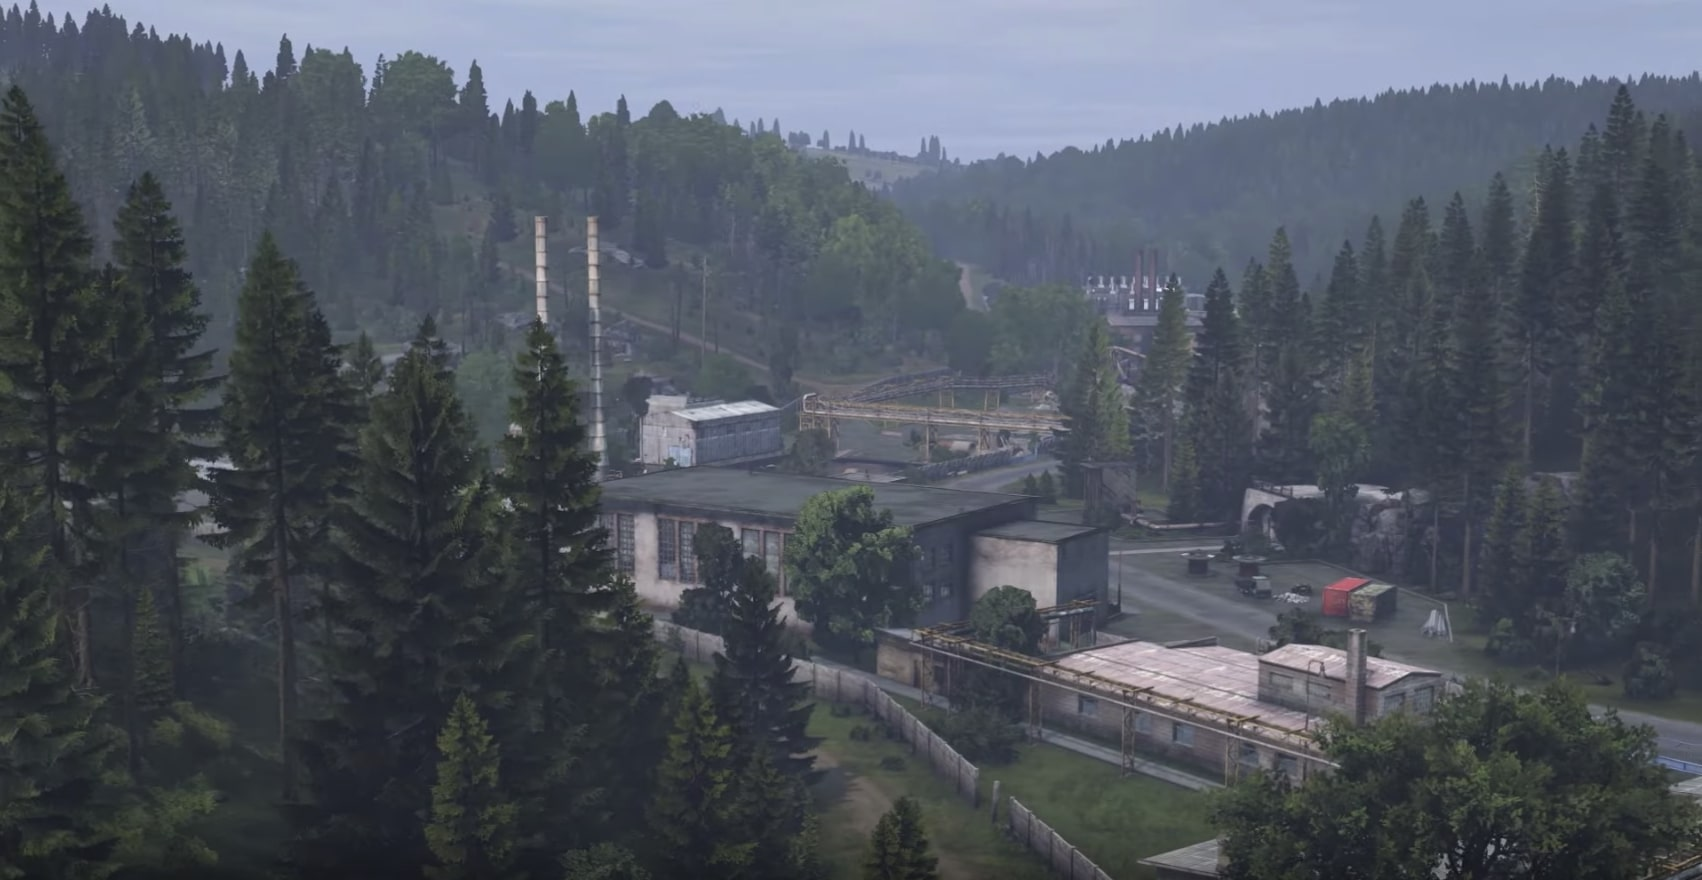 DayZ is getting a new map | PC Gamer Dayz Map Size on skyrim map size, driveclub map size, wasteland 2 map size, need for speed rivals map size, gta 5 map size, far cry 4 map size, tomb raider map size, fallout map size, l.a. noire map size, bloodborne map size, star citizen map size, starcraft 2 map size, don't starve map size, assassin's creed unity map size, goat simulator map size, open world map size, sunset overdrive map size, far cry 2 map size, infamous second son map size,